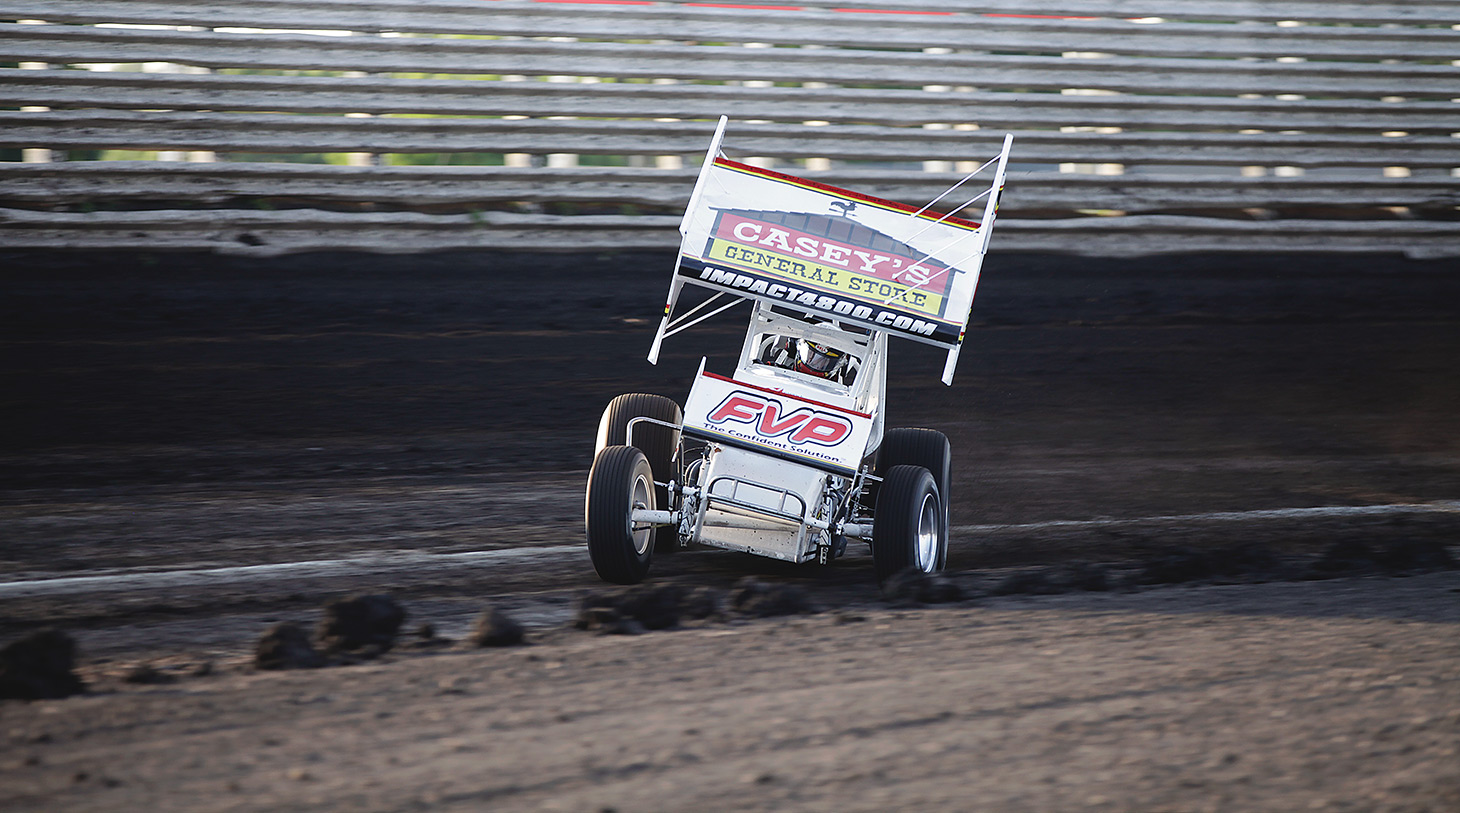 Brian Brown flies through turn 3 at Knoxville Raceway during Qualifications. (Jeffrey Turford / TDP)